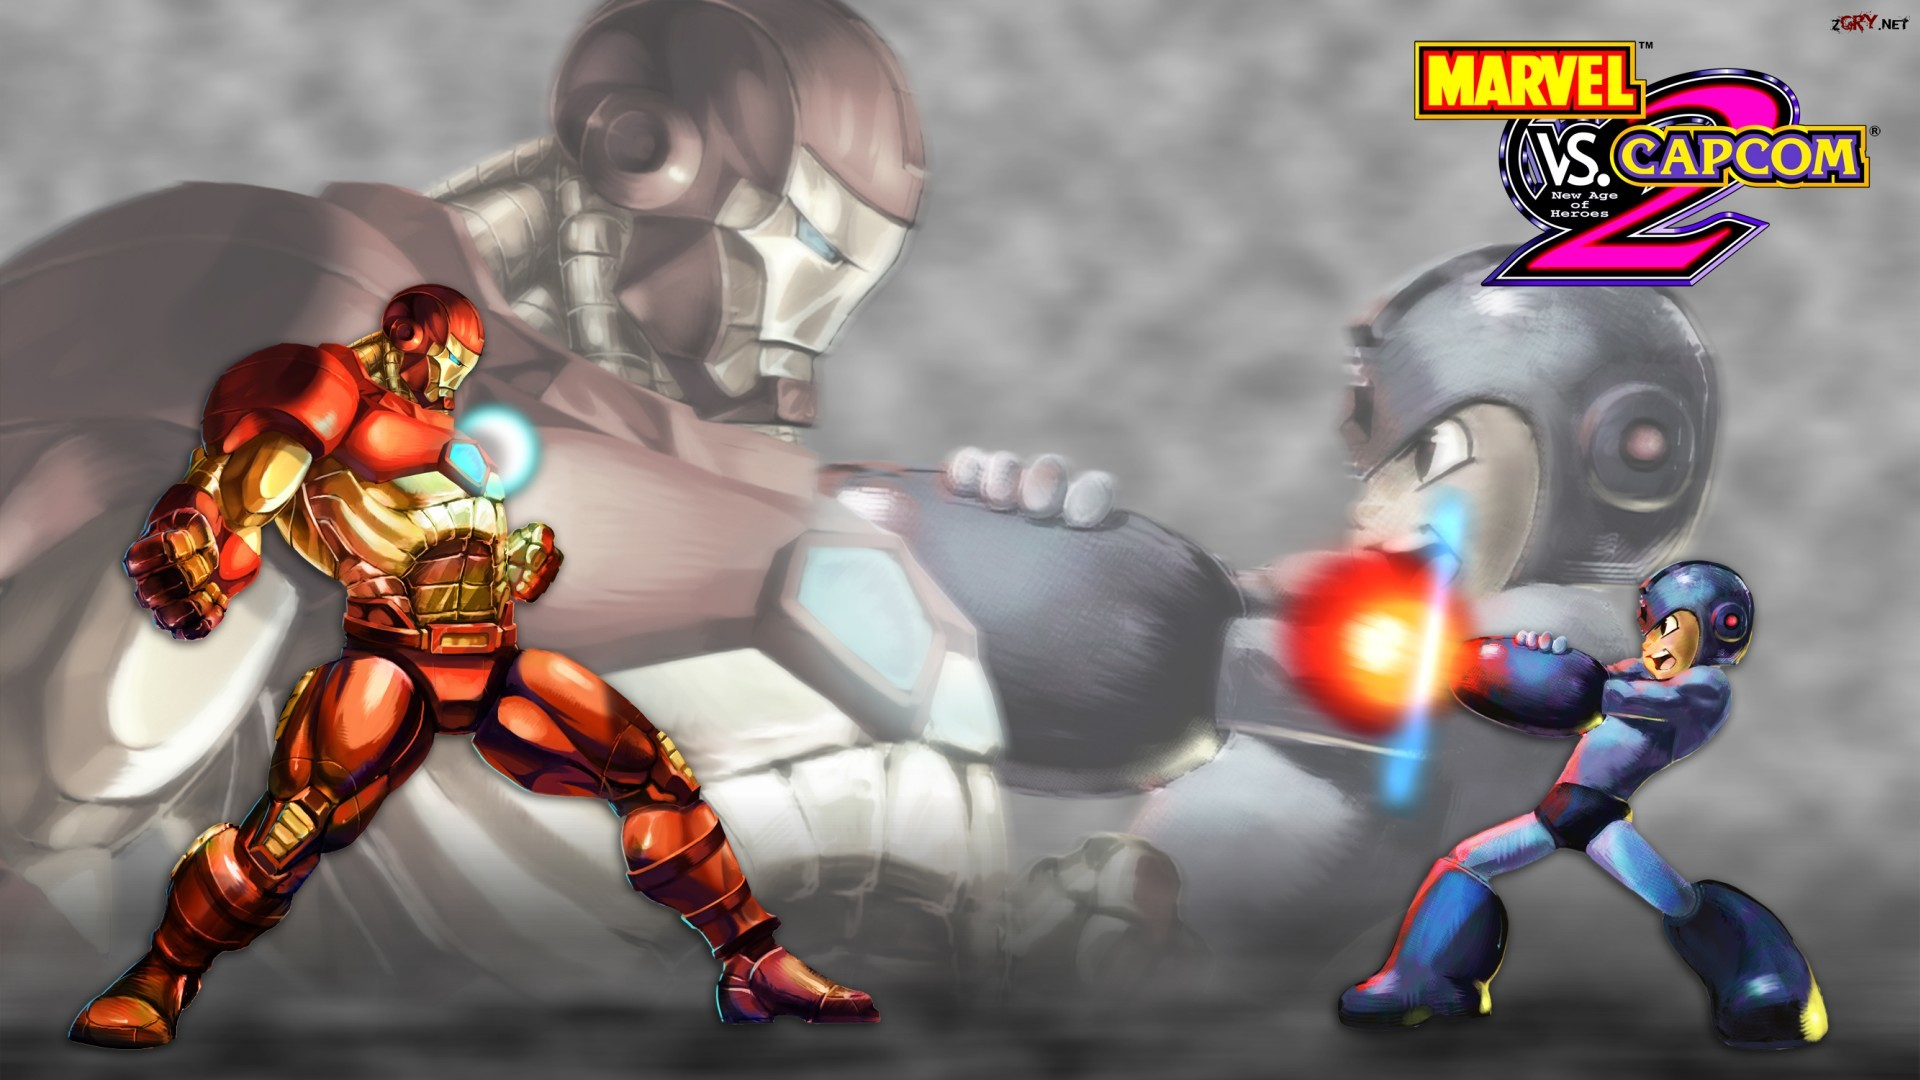 Gra, Marvel VS Capcom 2